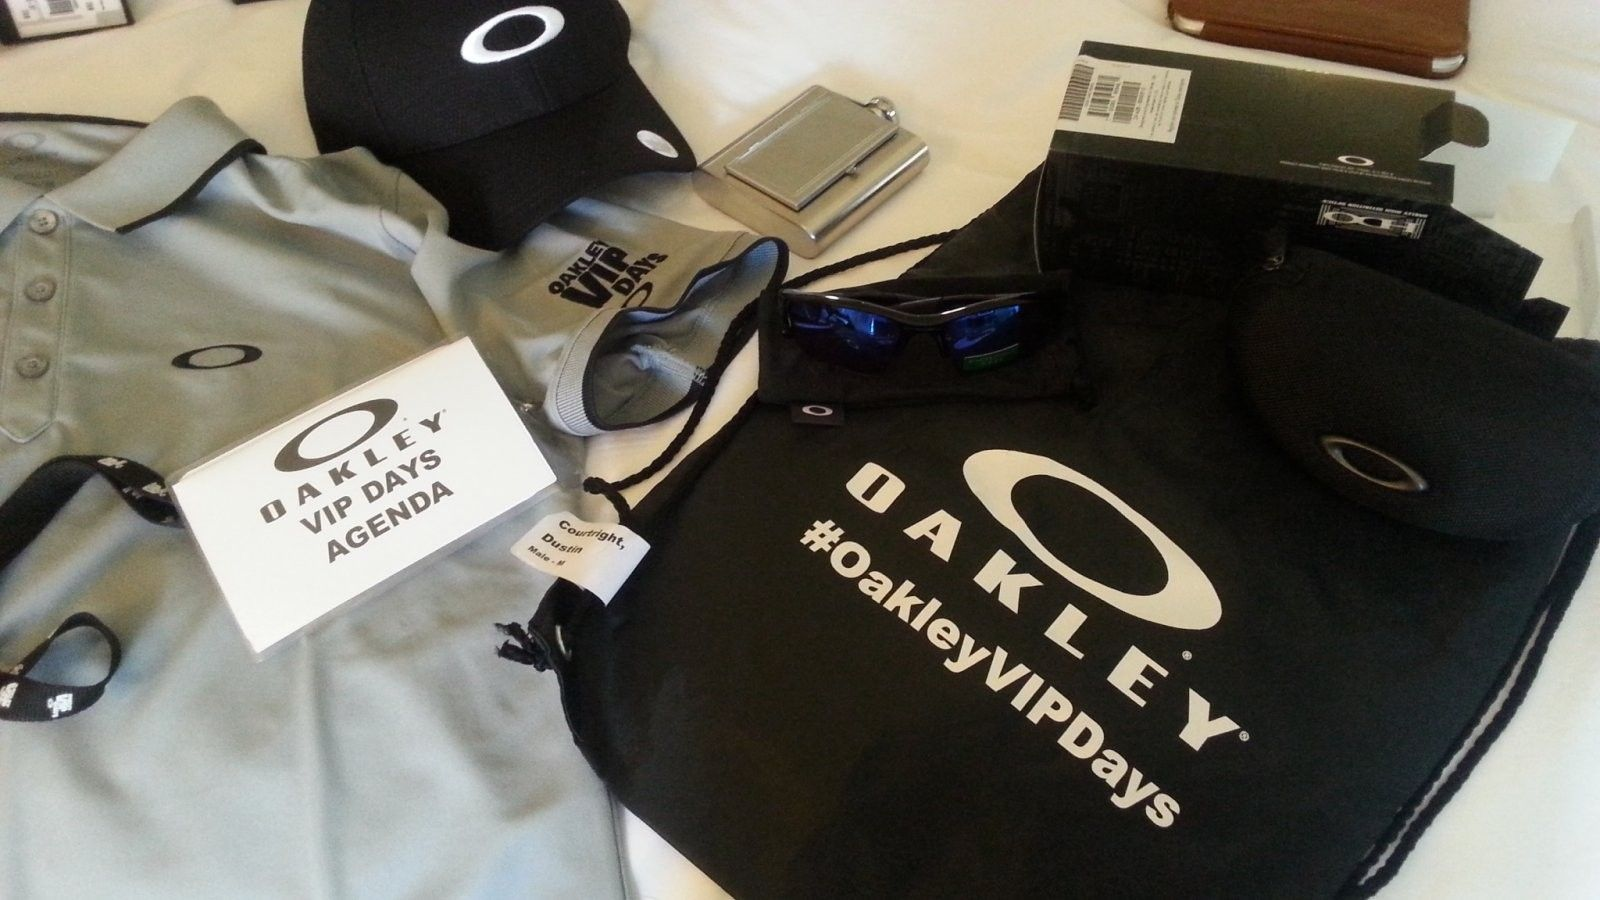 Oakley Prizm Lens Technology - I Wish You Guys Could Have Seen What I Saw Today! - 2014-10-06 13.30.09.jpg